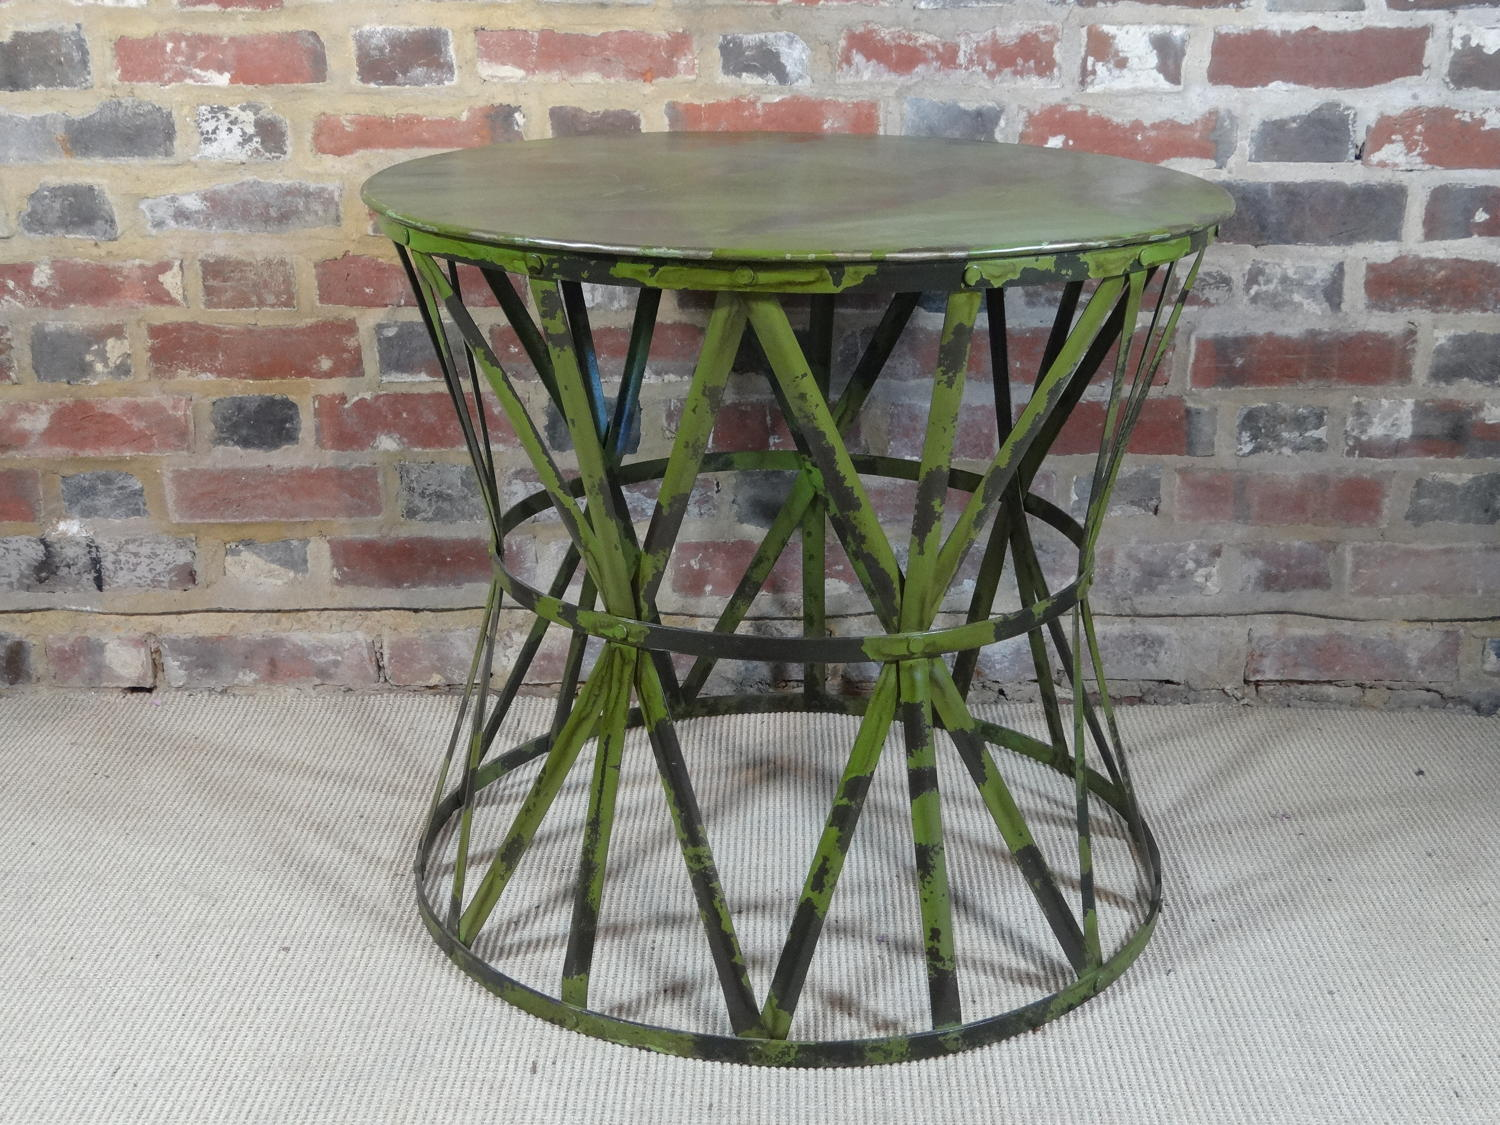 Painted metal table